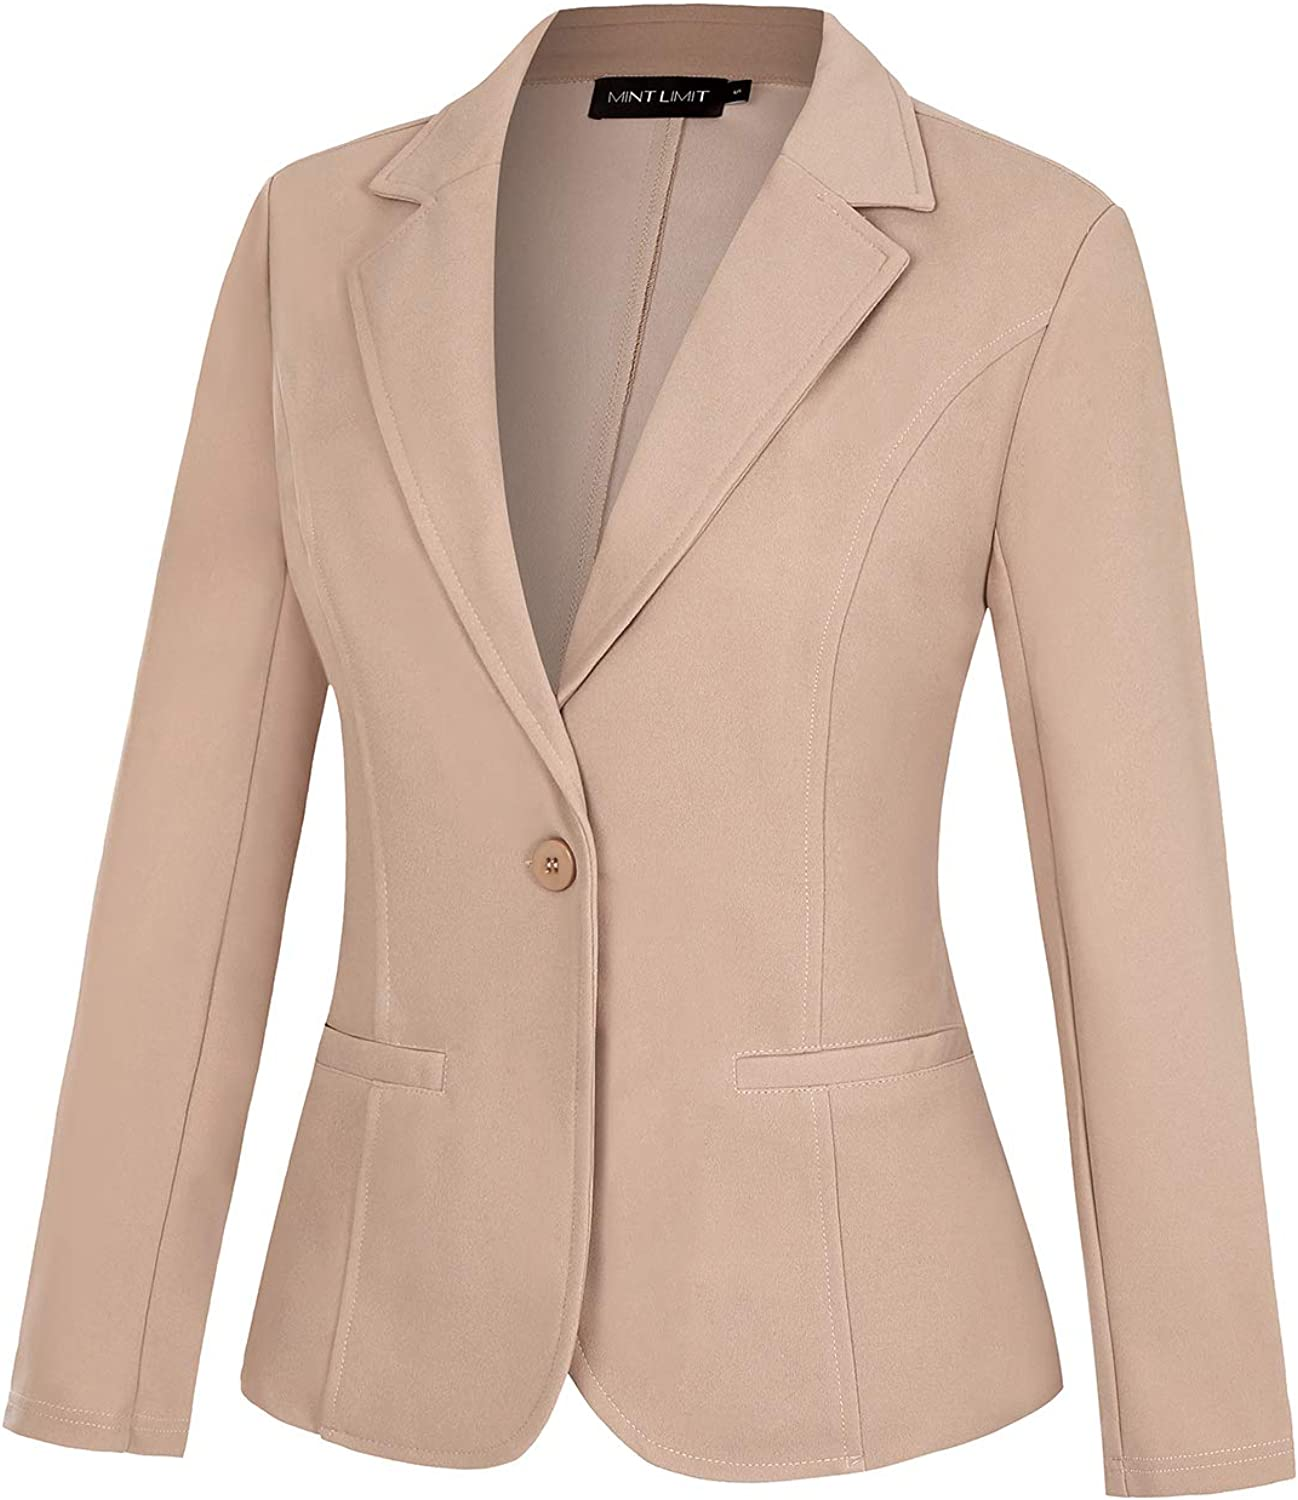 MINTLIMIT Womens Casual Work Office Blazer Pockets Button Long Sleeve Suits Jackets